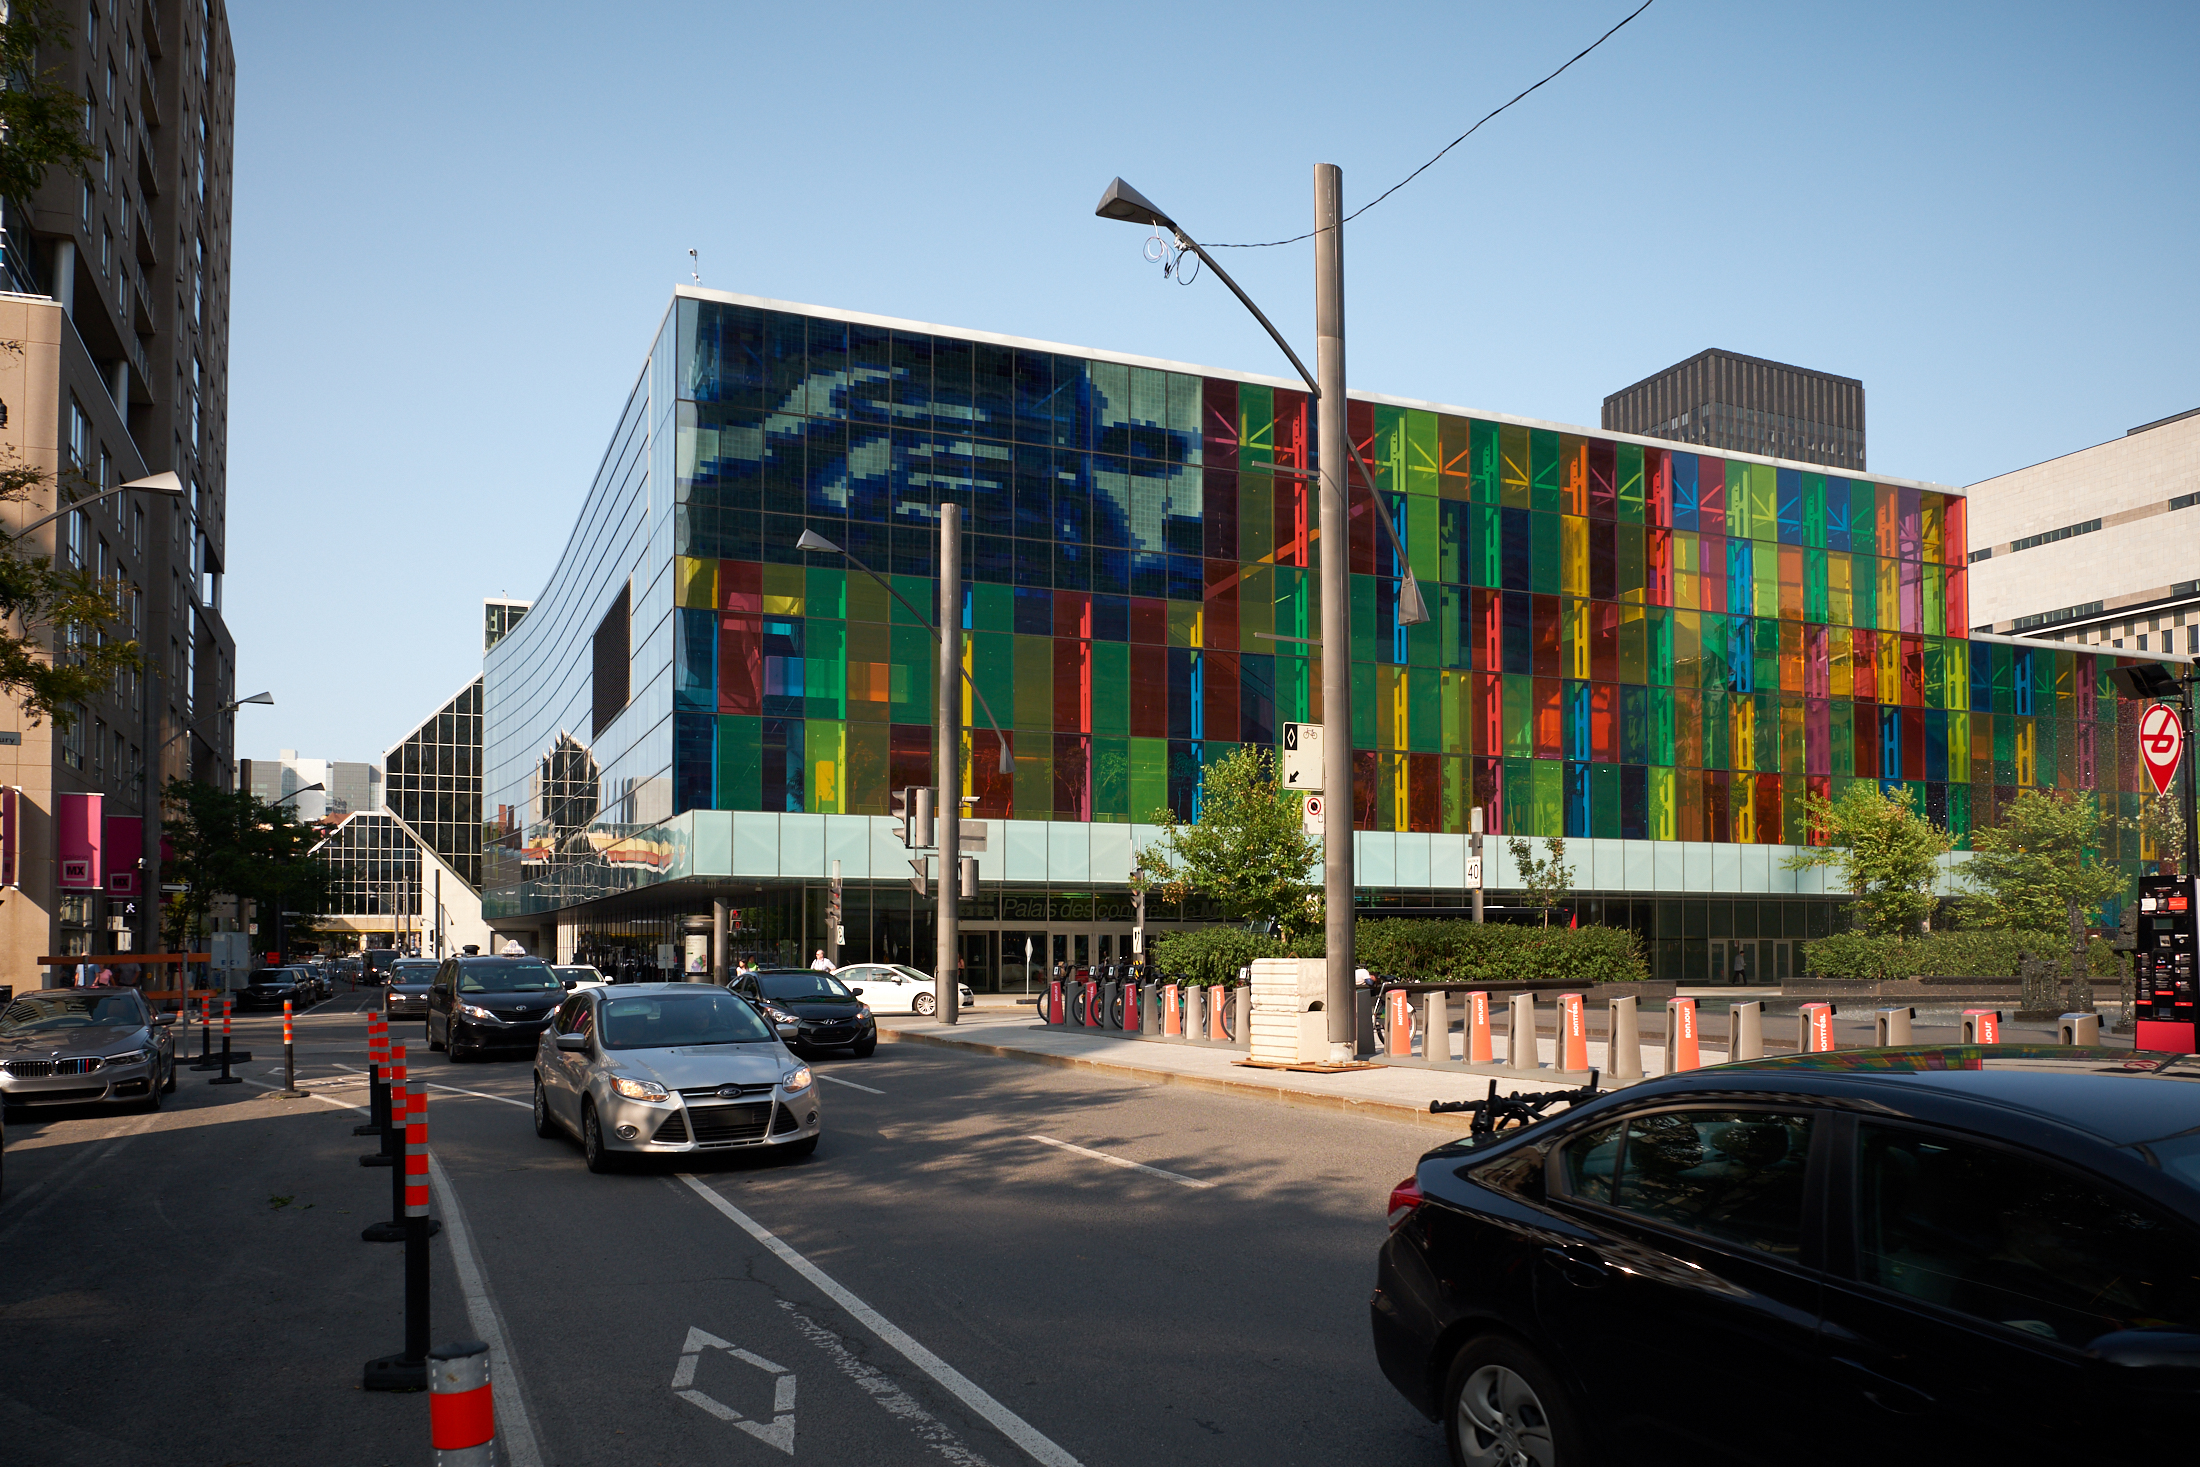 The Palais de congres de Montreal where more than 4,000 Latter-day Saints gathered on Aug. 18, 2018, to attend a devotional with President Russell M. Nelson and his wife, Sister Wendy Nelson. President and Sister Nelson visited three cities in central and eastern Canada Aug. 17-19.